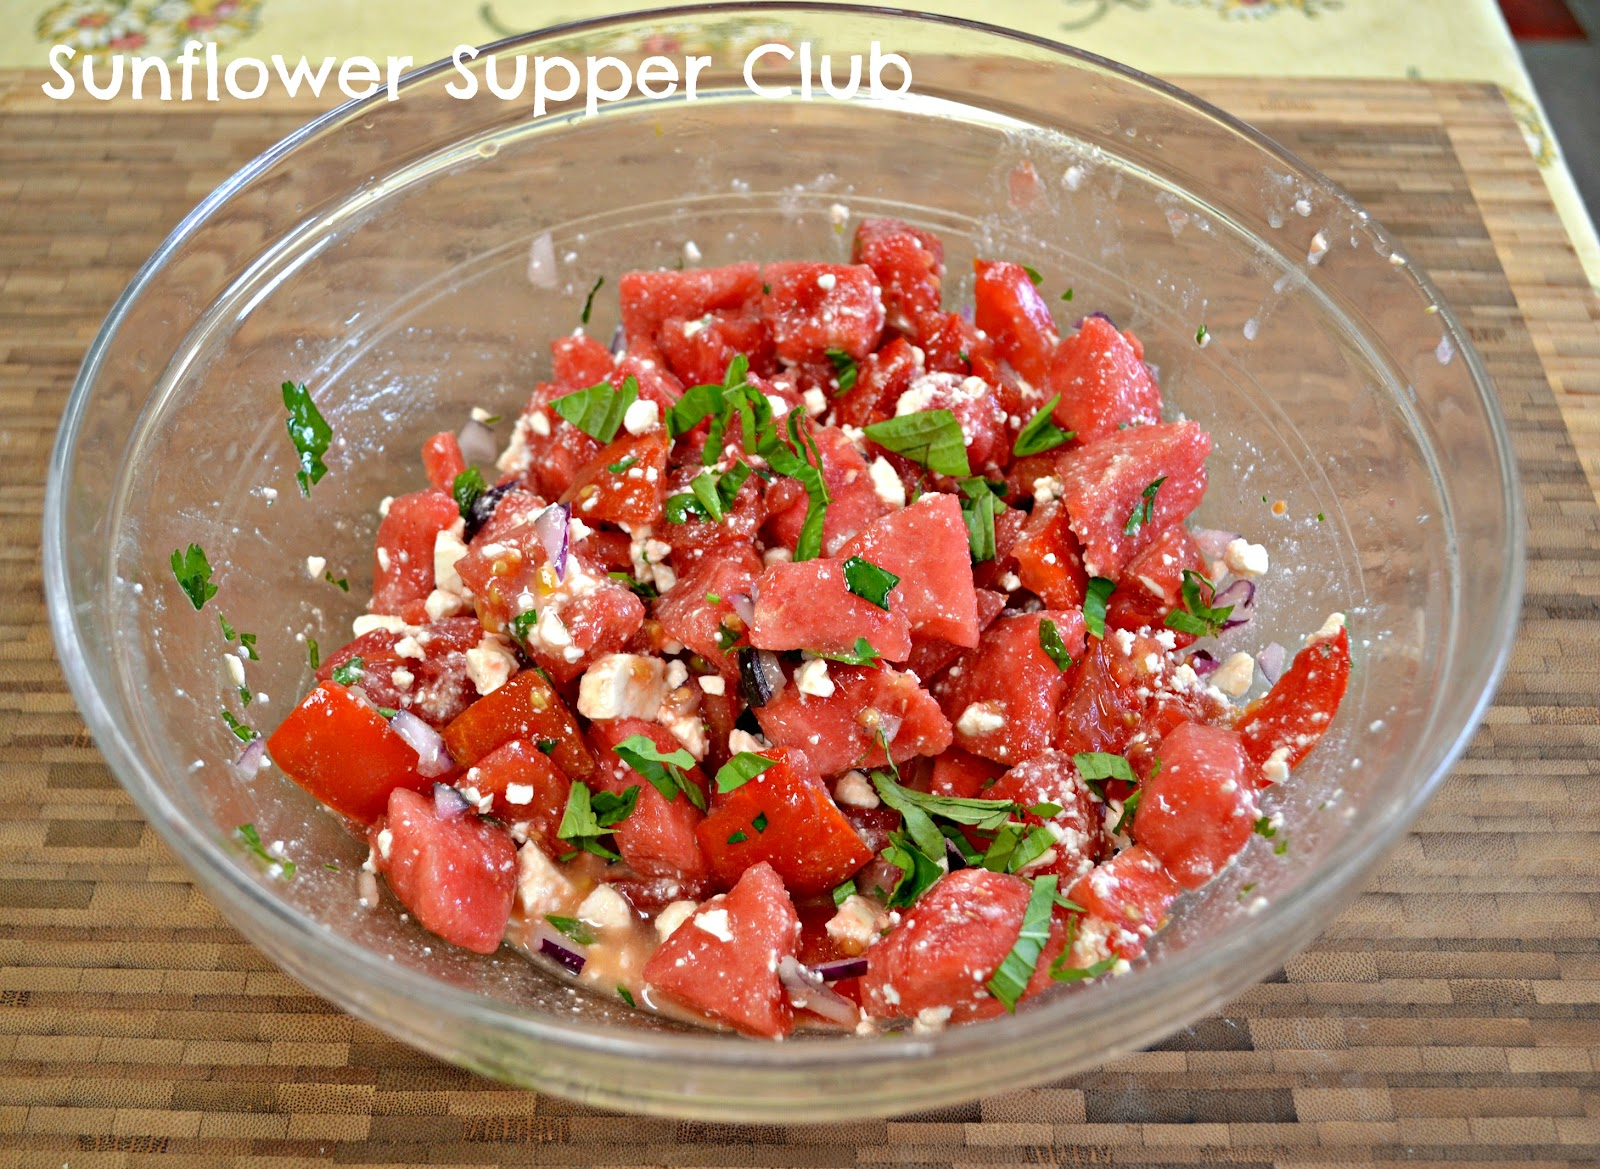 Tomato And Watermelon Salad With Feta Cheese Recipes — Dishmaps